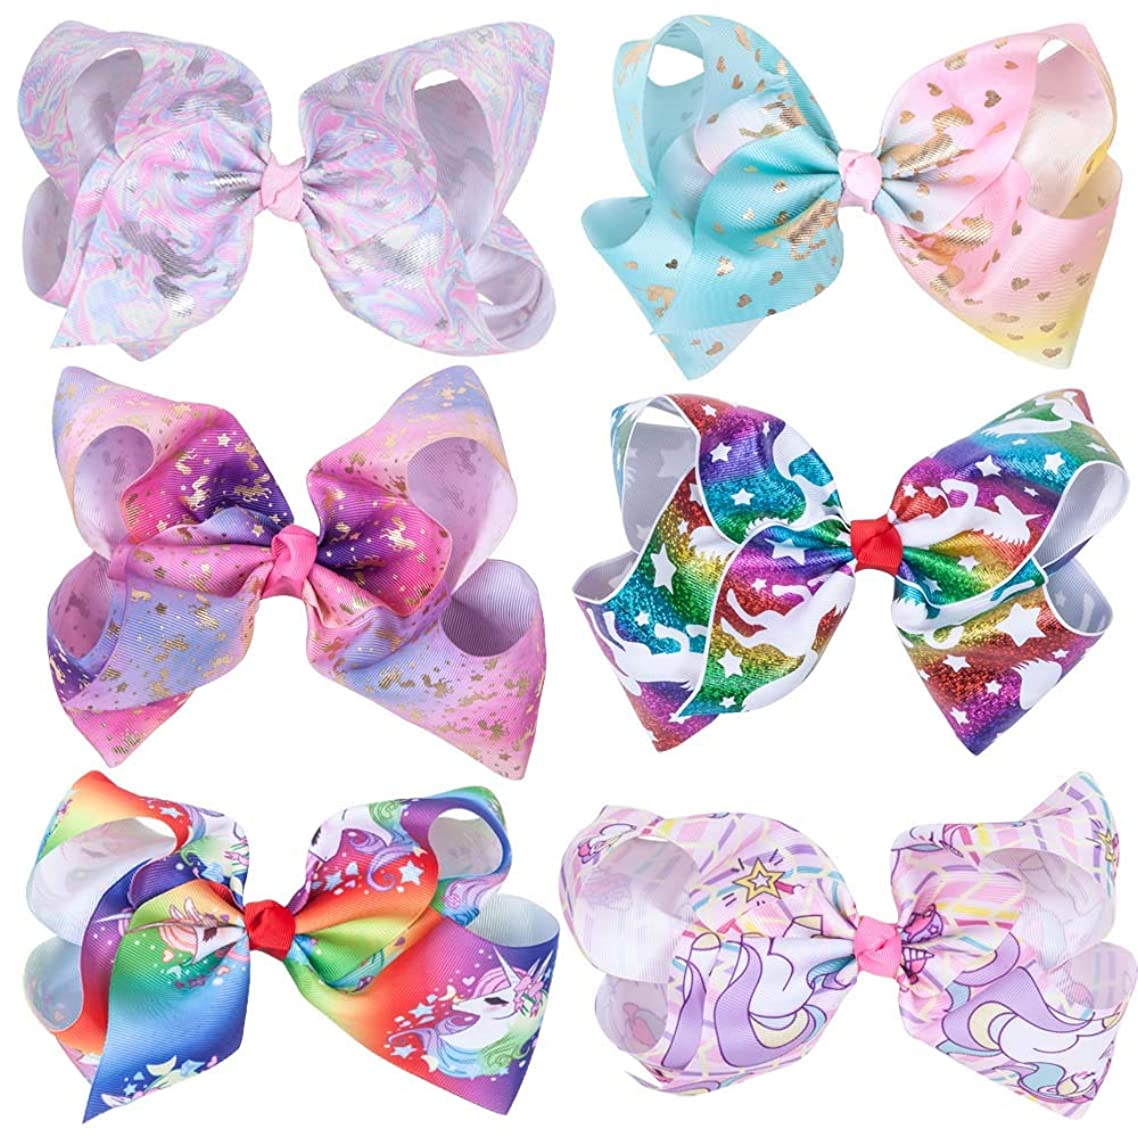 Rsky 7inch Big Sparking Unicorn Cheer Bow Hair Clips for Dancing Cheerleading Girls Pack of 6 (Style 1)